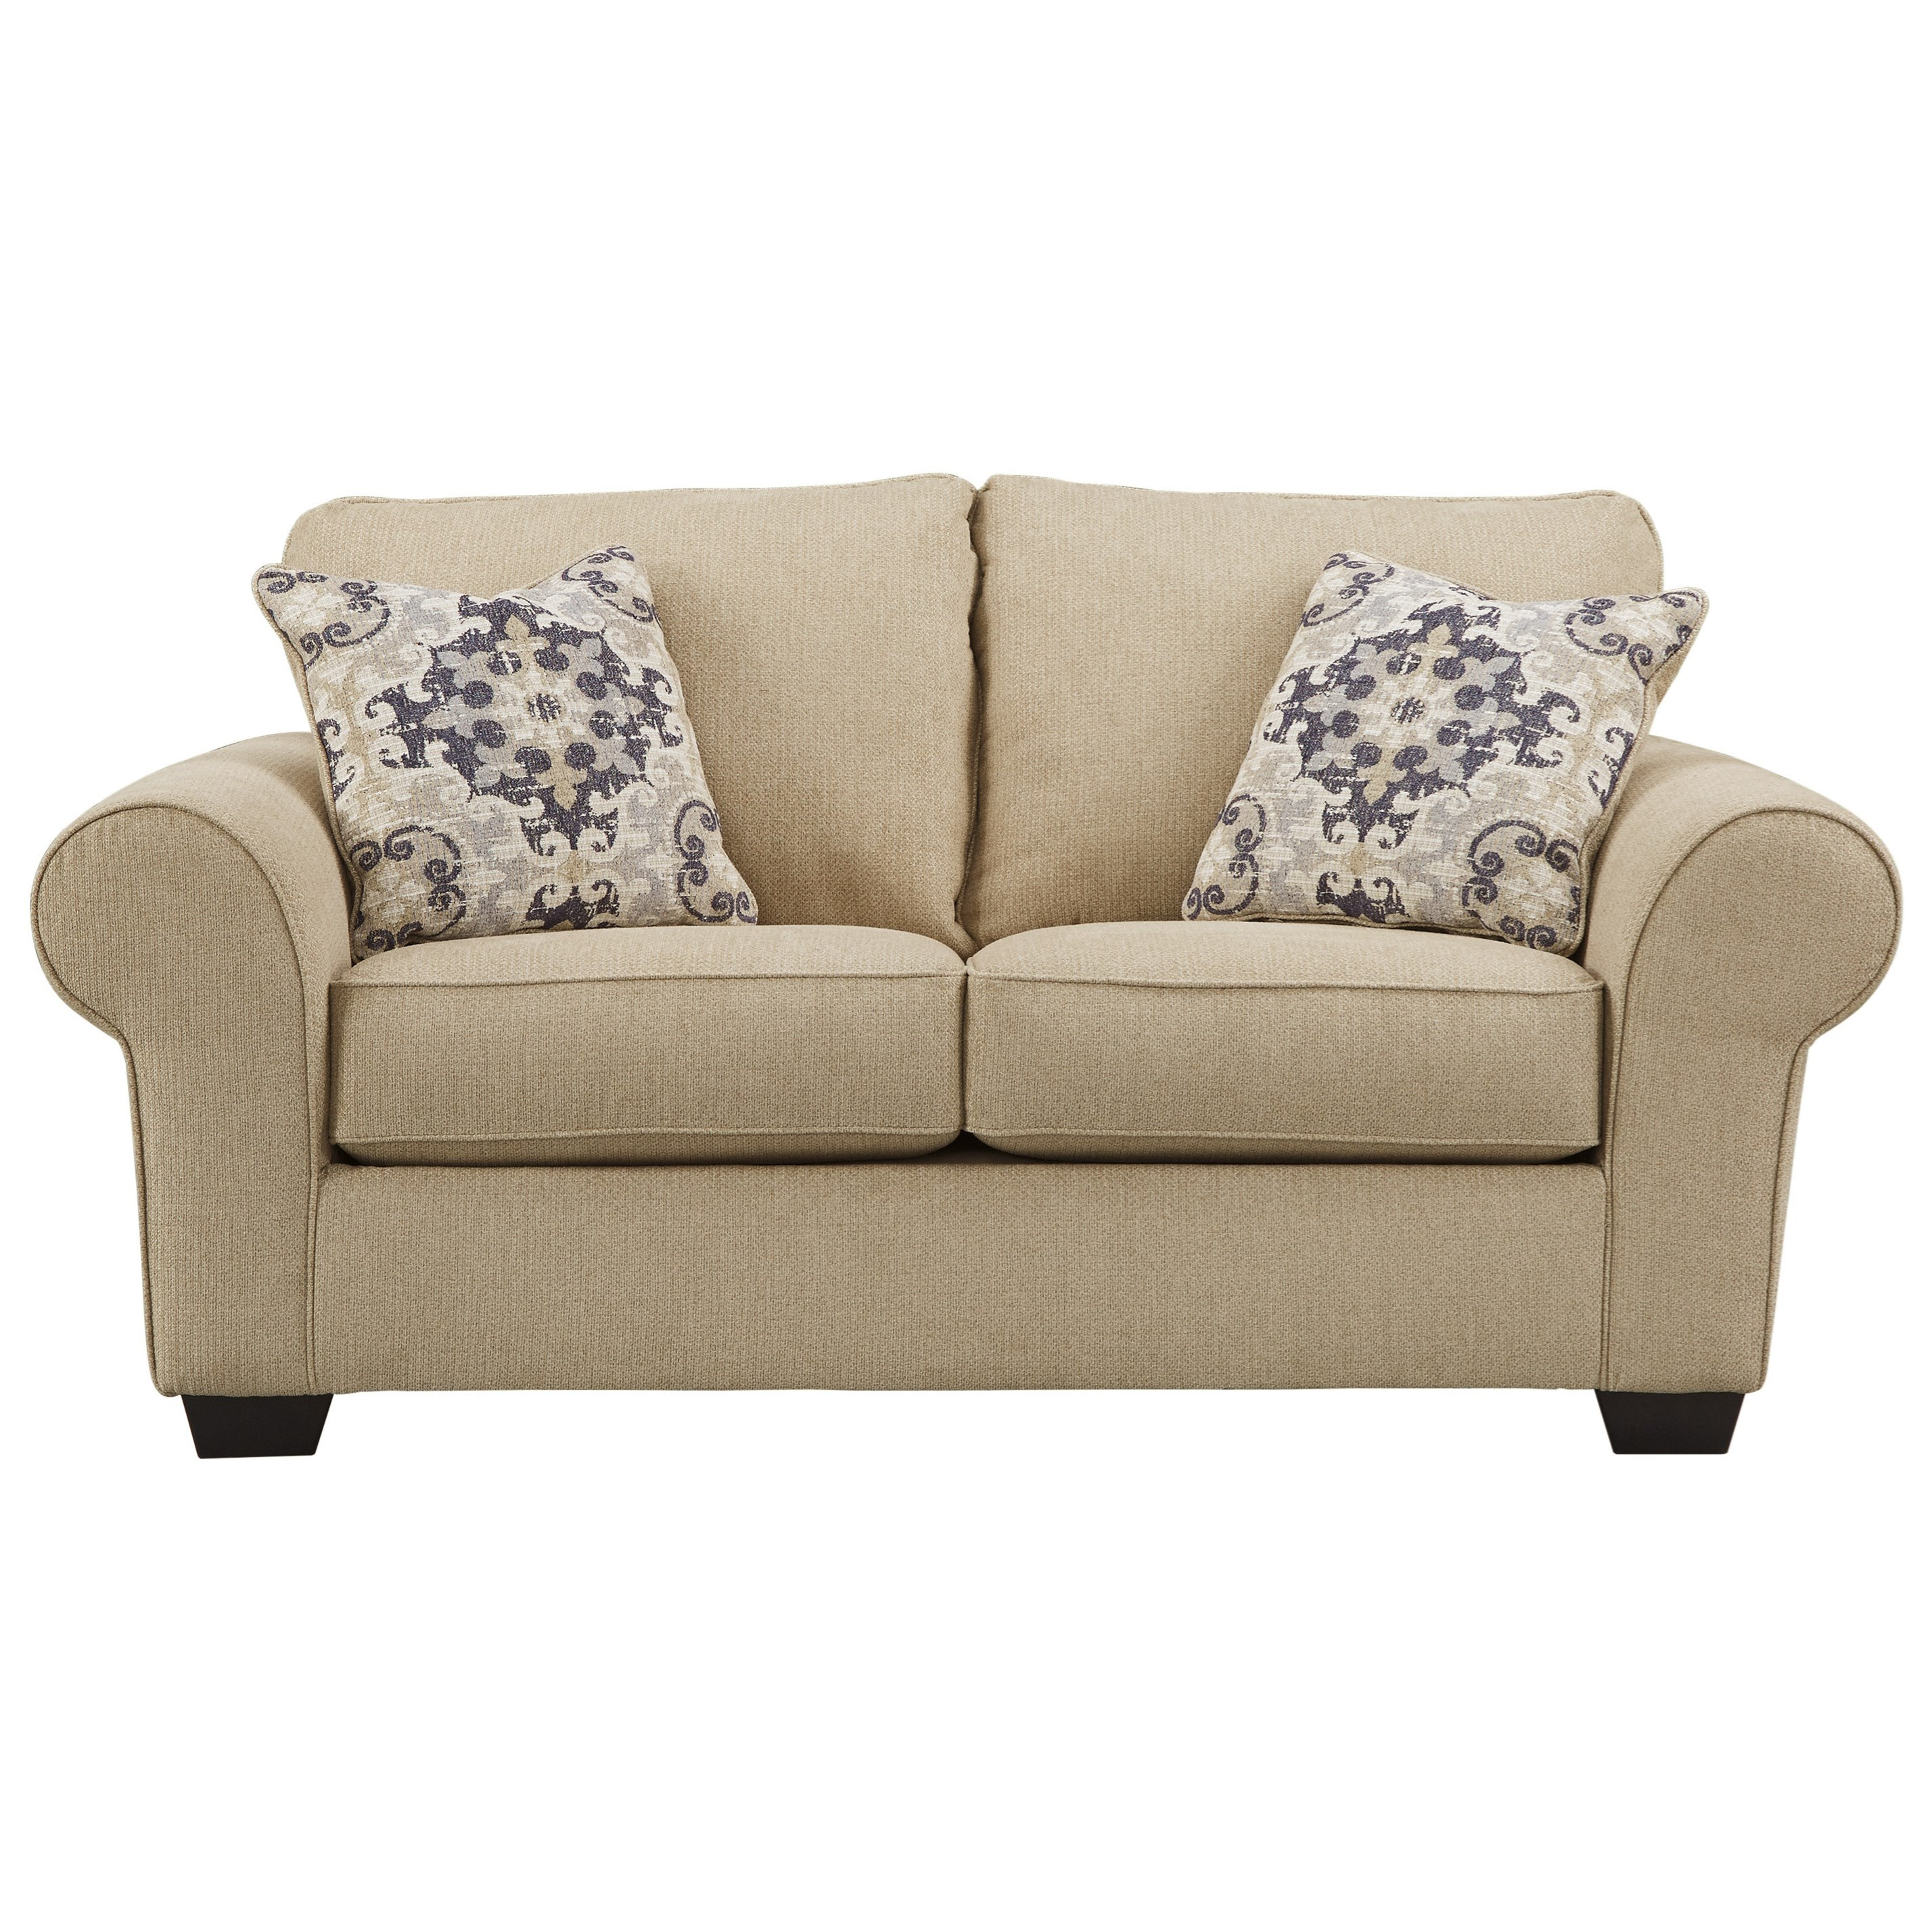 Signature Design By Ashley Denitasse Casual Loveseat With Rolled Arms Rotmans Love Seats